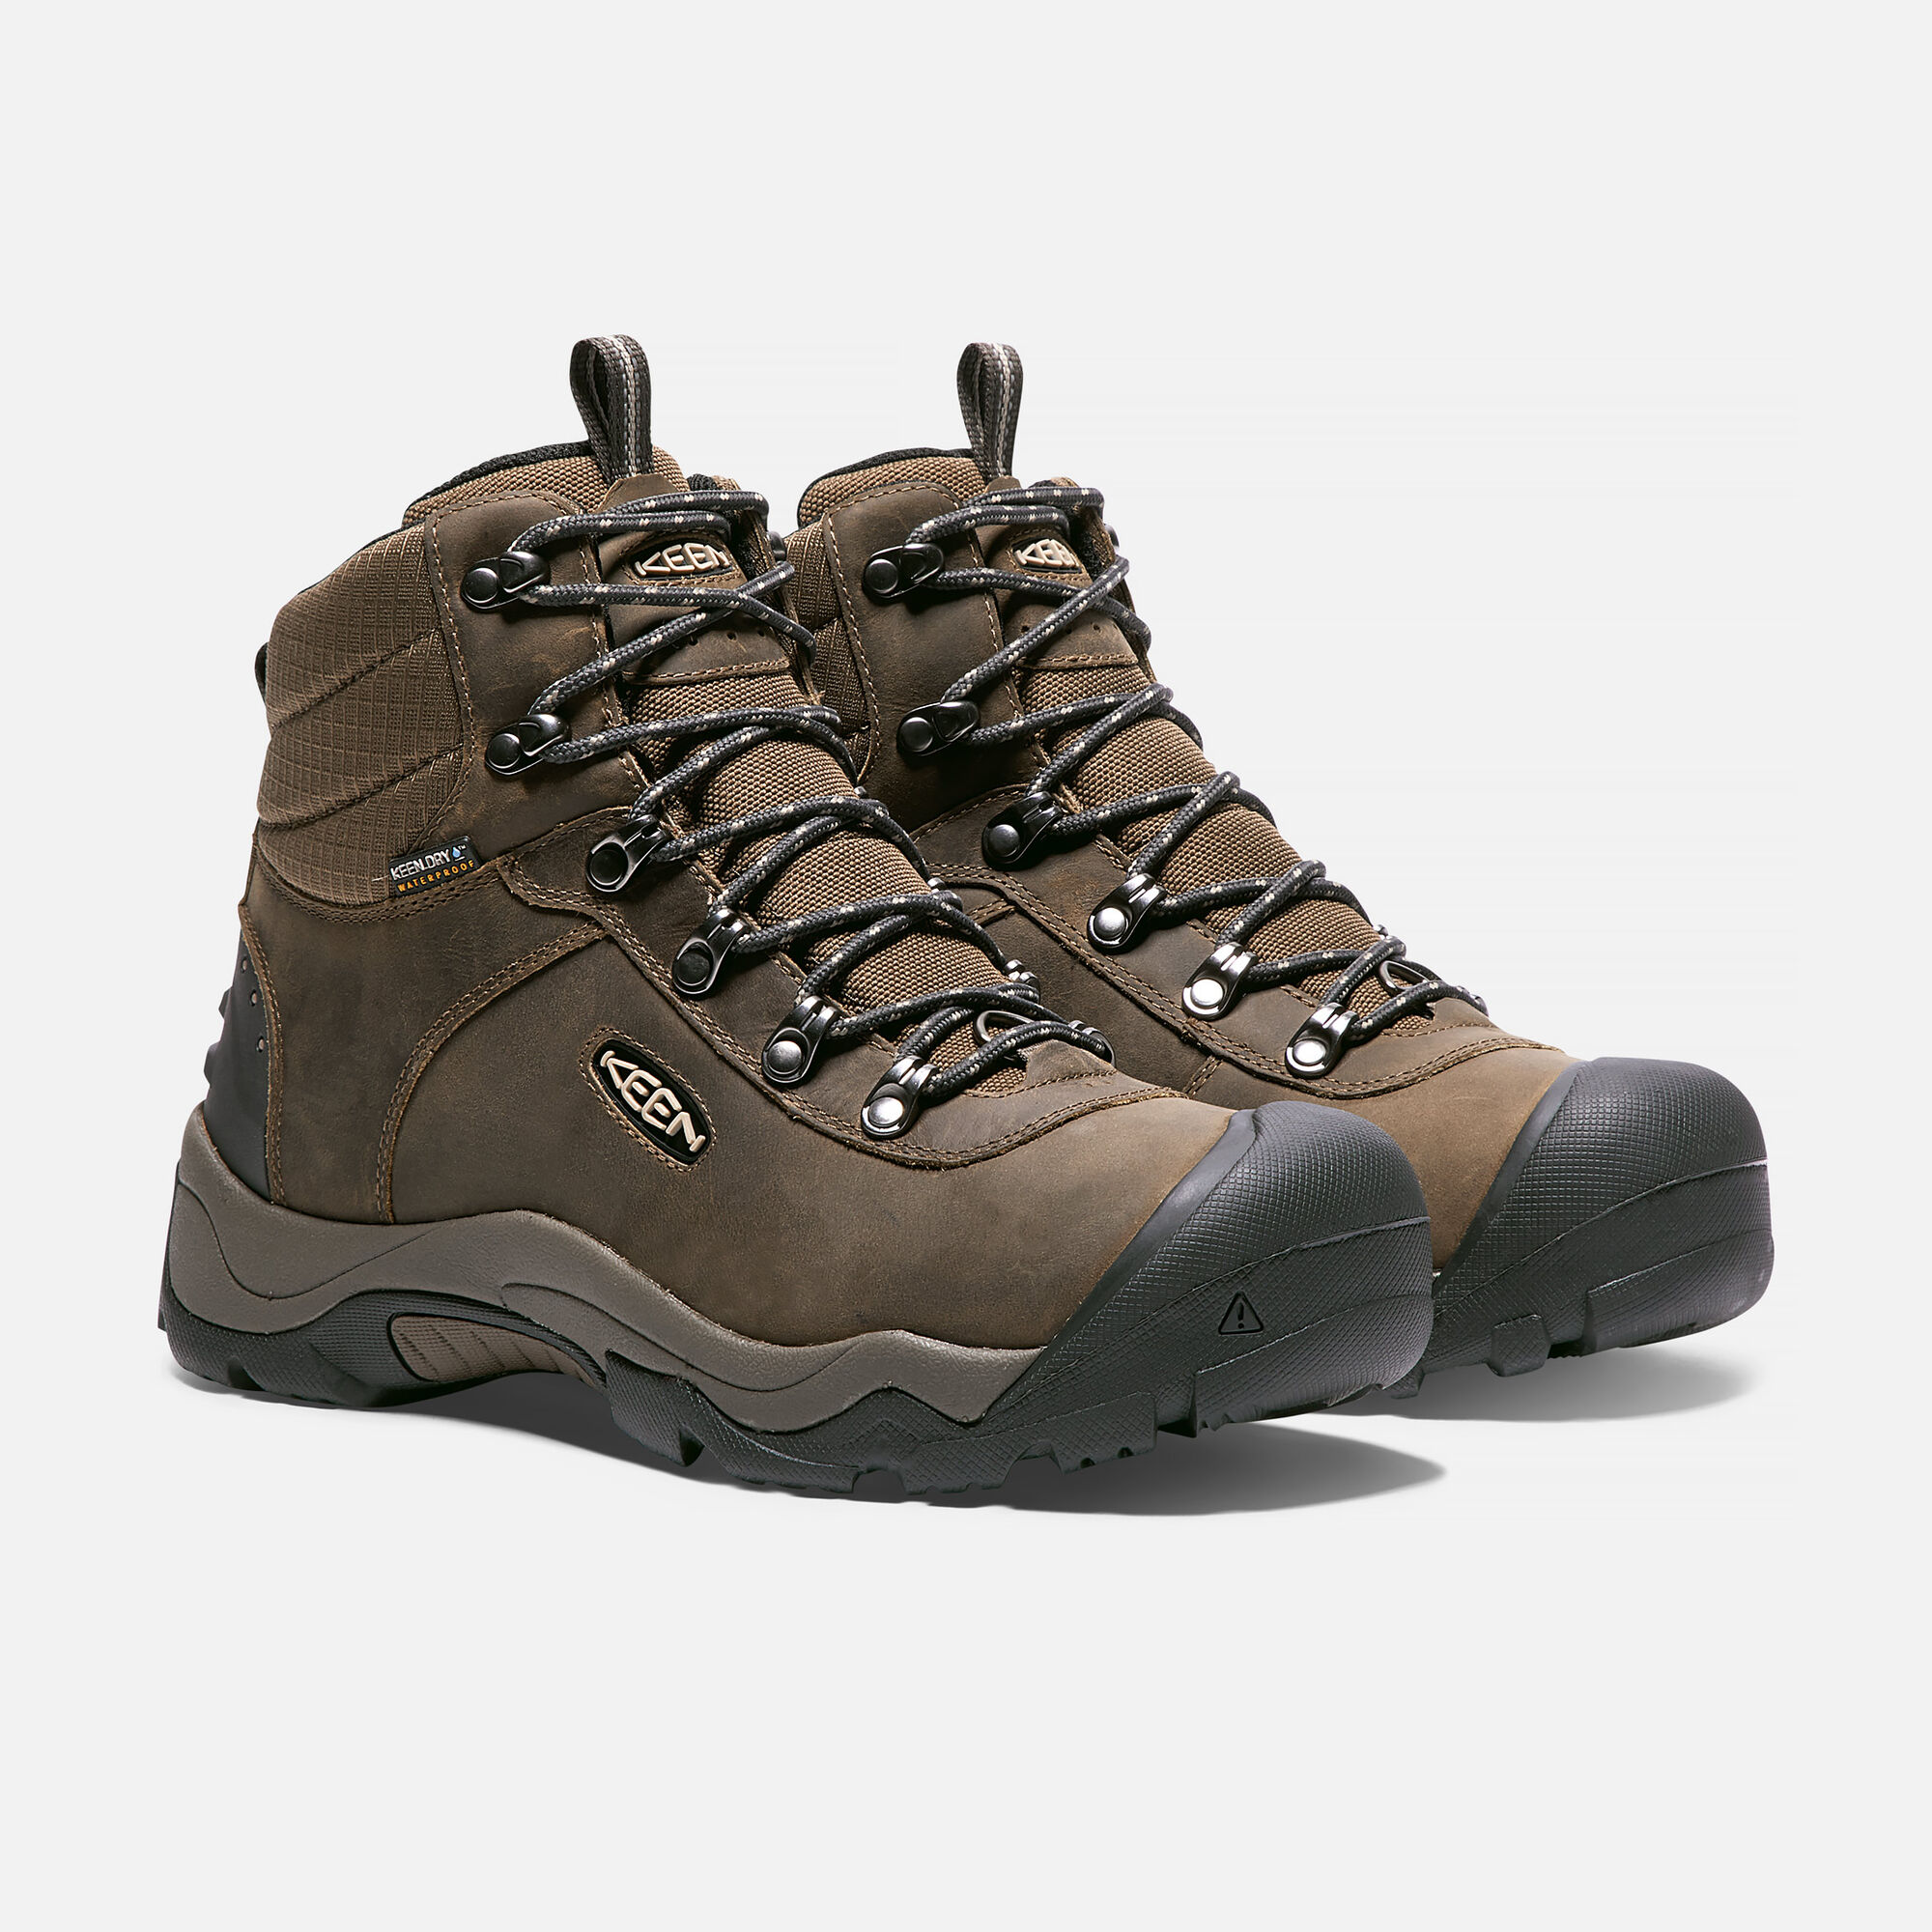 1c9a304948 Men's Revel III - Neither rain nor snow will slow you down. | KEEN ...